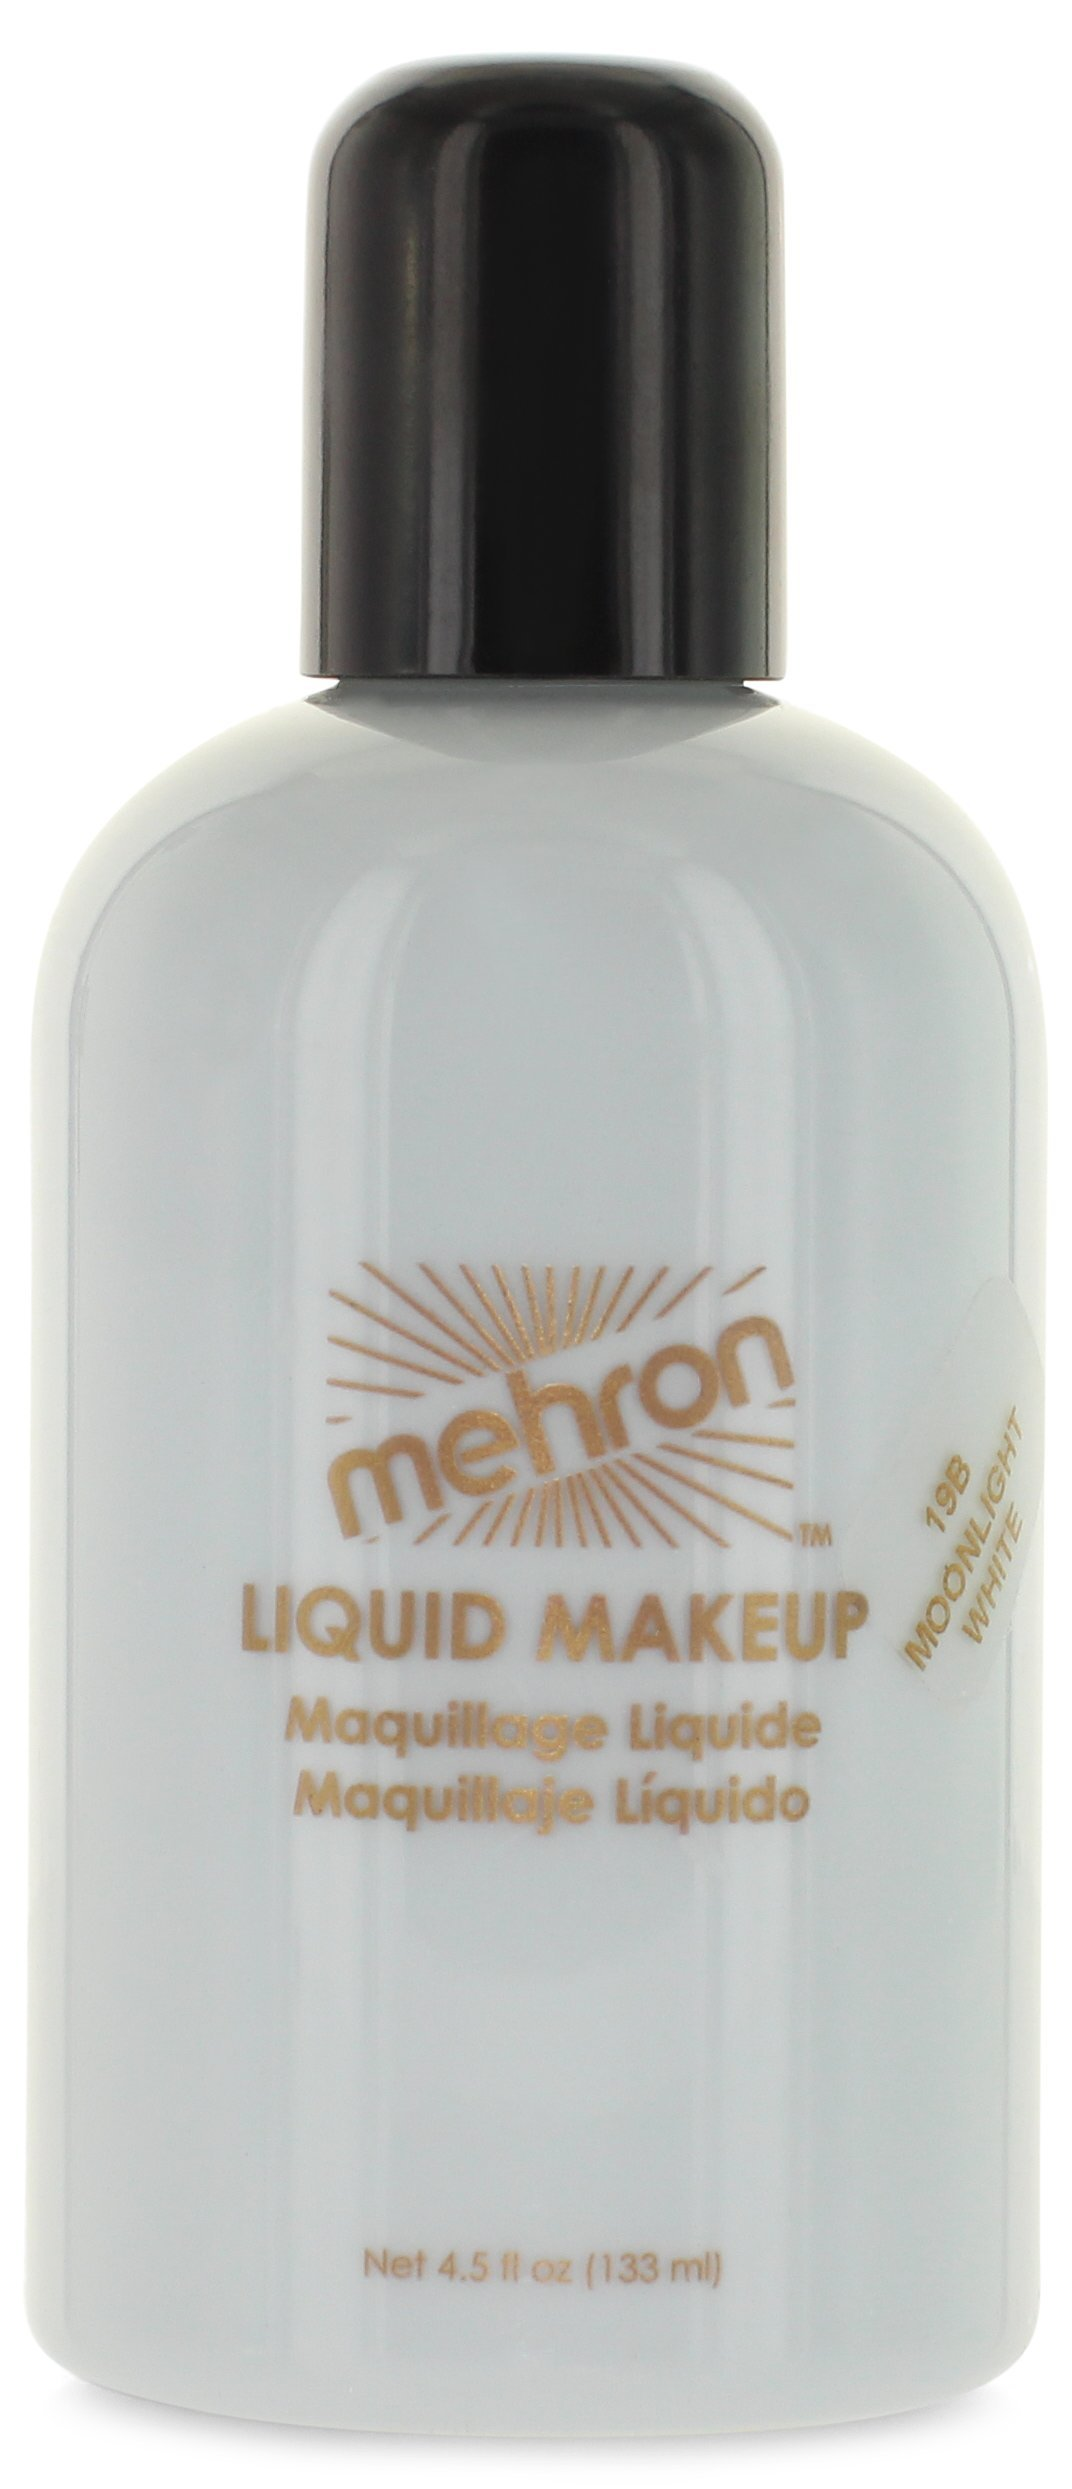 Mehron Makeup Liquid Face and Body Paint (4.5 oz) (MOONLIGHT WHITE)